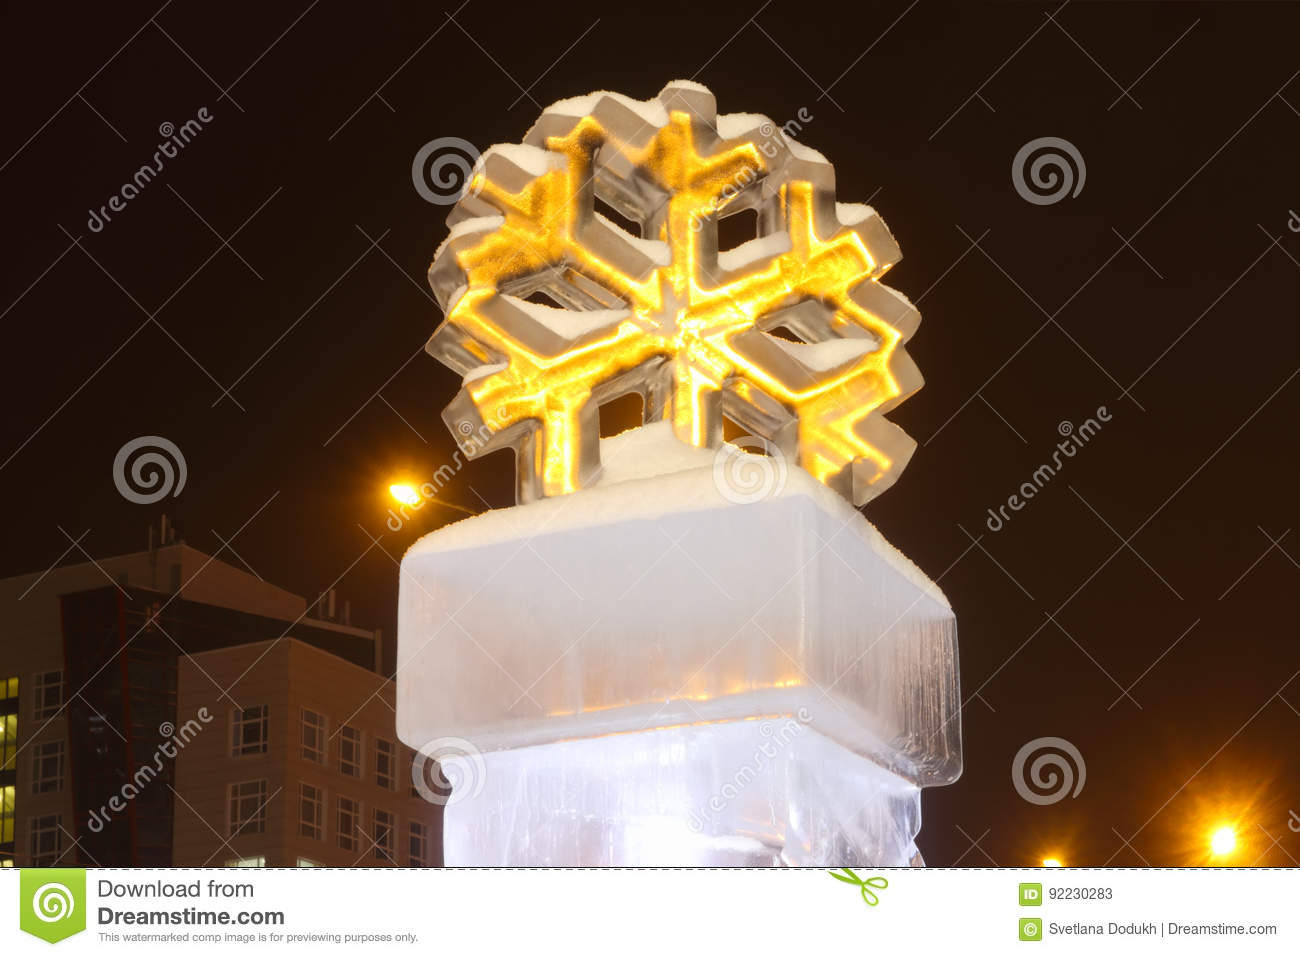 Big man-made ice in city at winter night